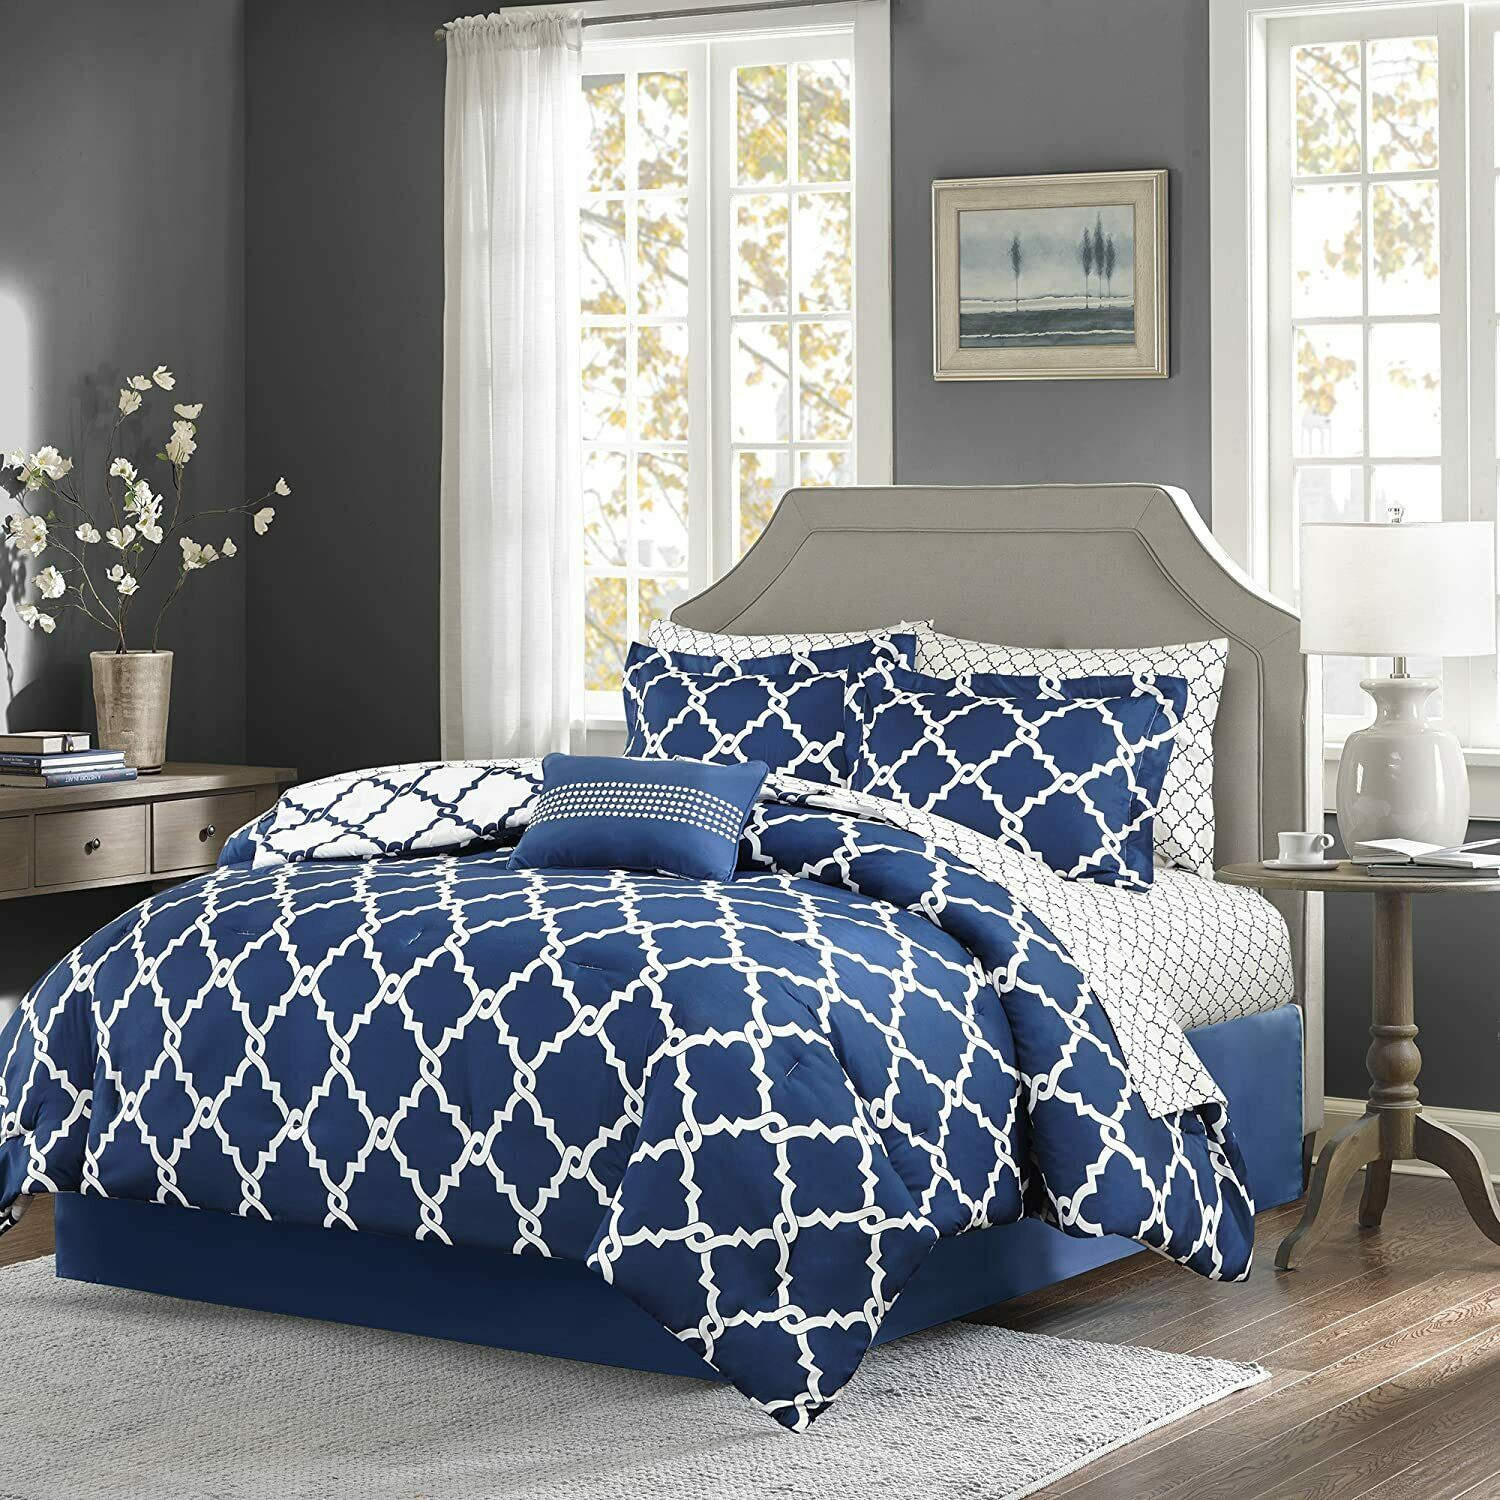 Addison Collection 10-Piece Comforter Set Reversible Bedding with Bed Sheets Queen Size - Navy Blue Geo